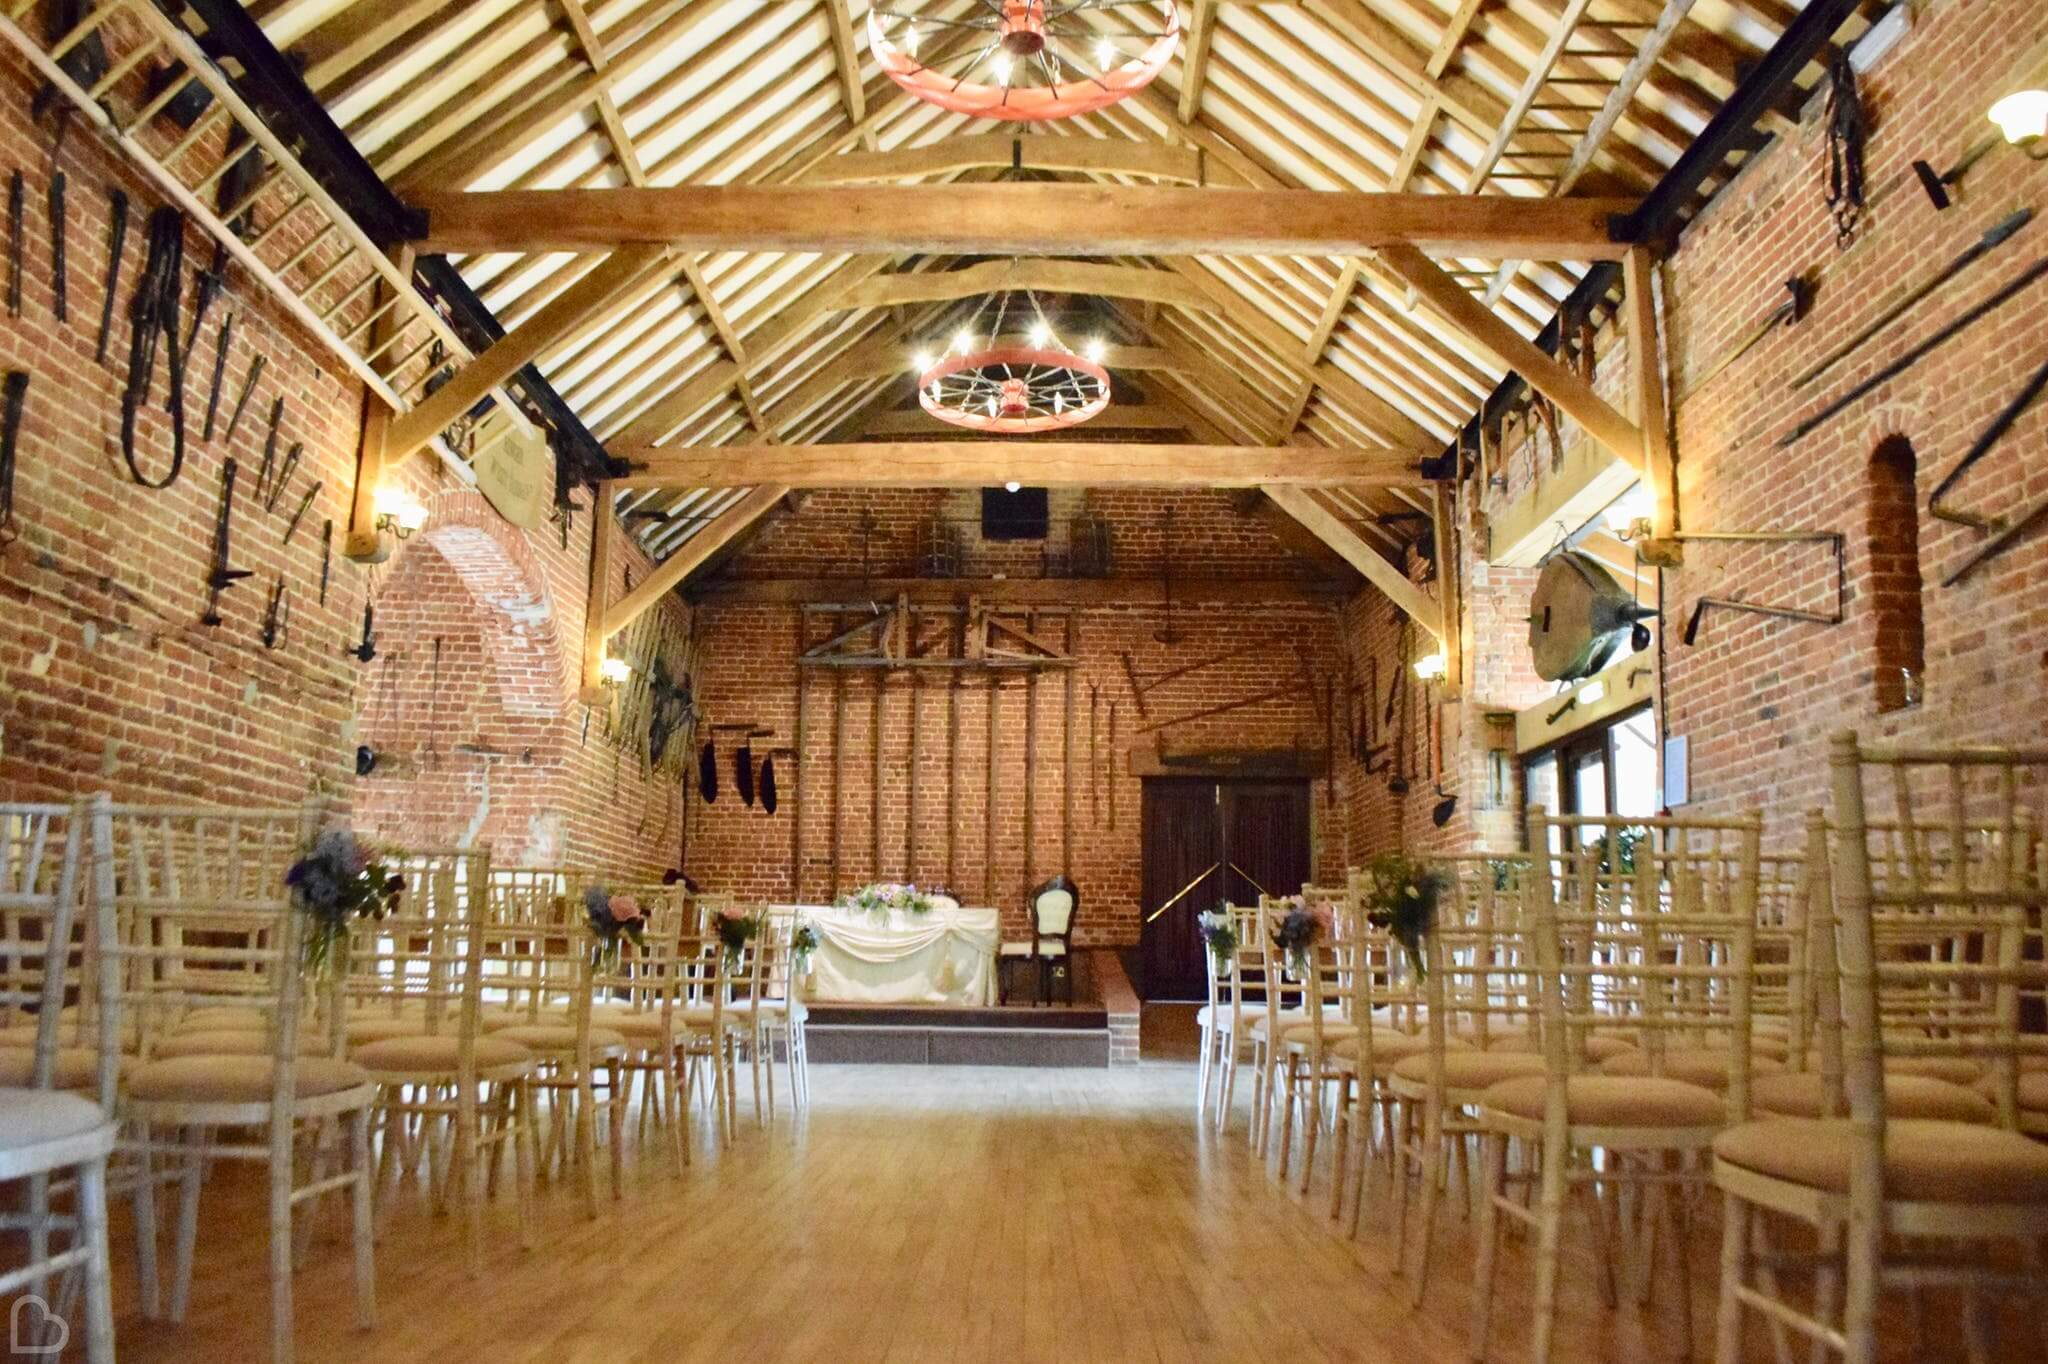 Hunters Hall barn set up with chairs and an altar, for a wedding ceremony.